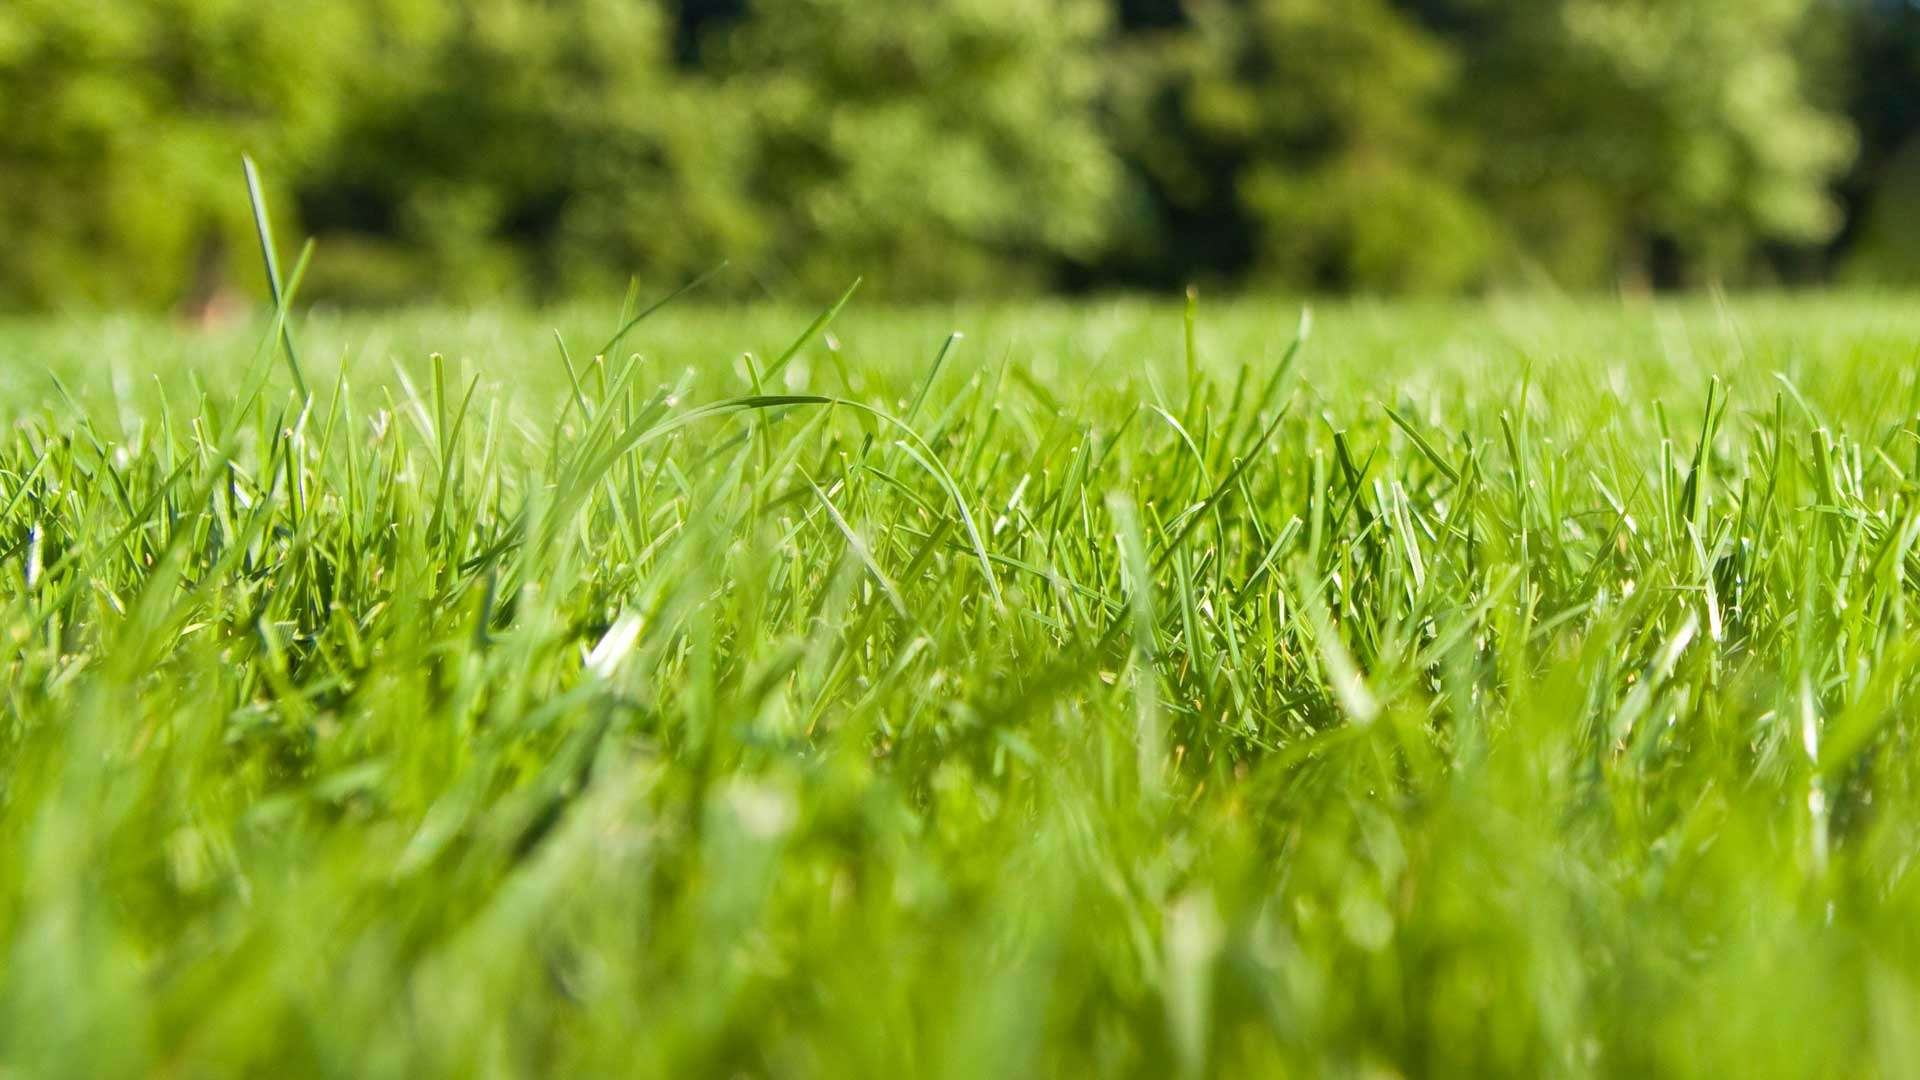 Close up photo of a healthy lush green lawn at a home in Bogalusa, LA.